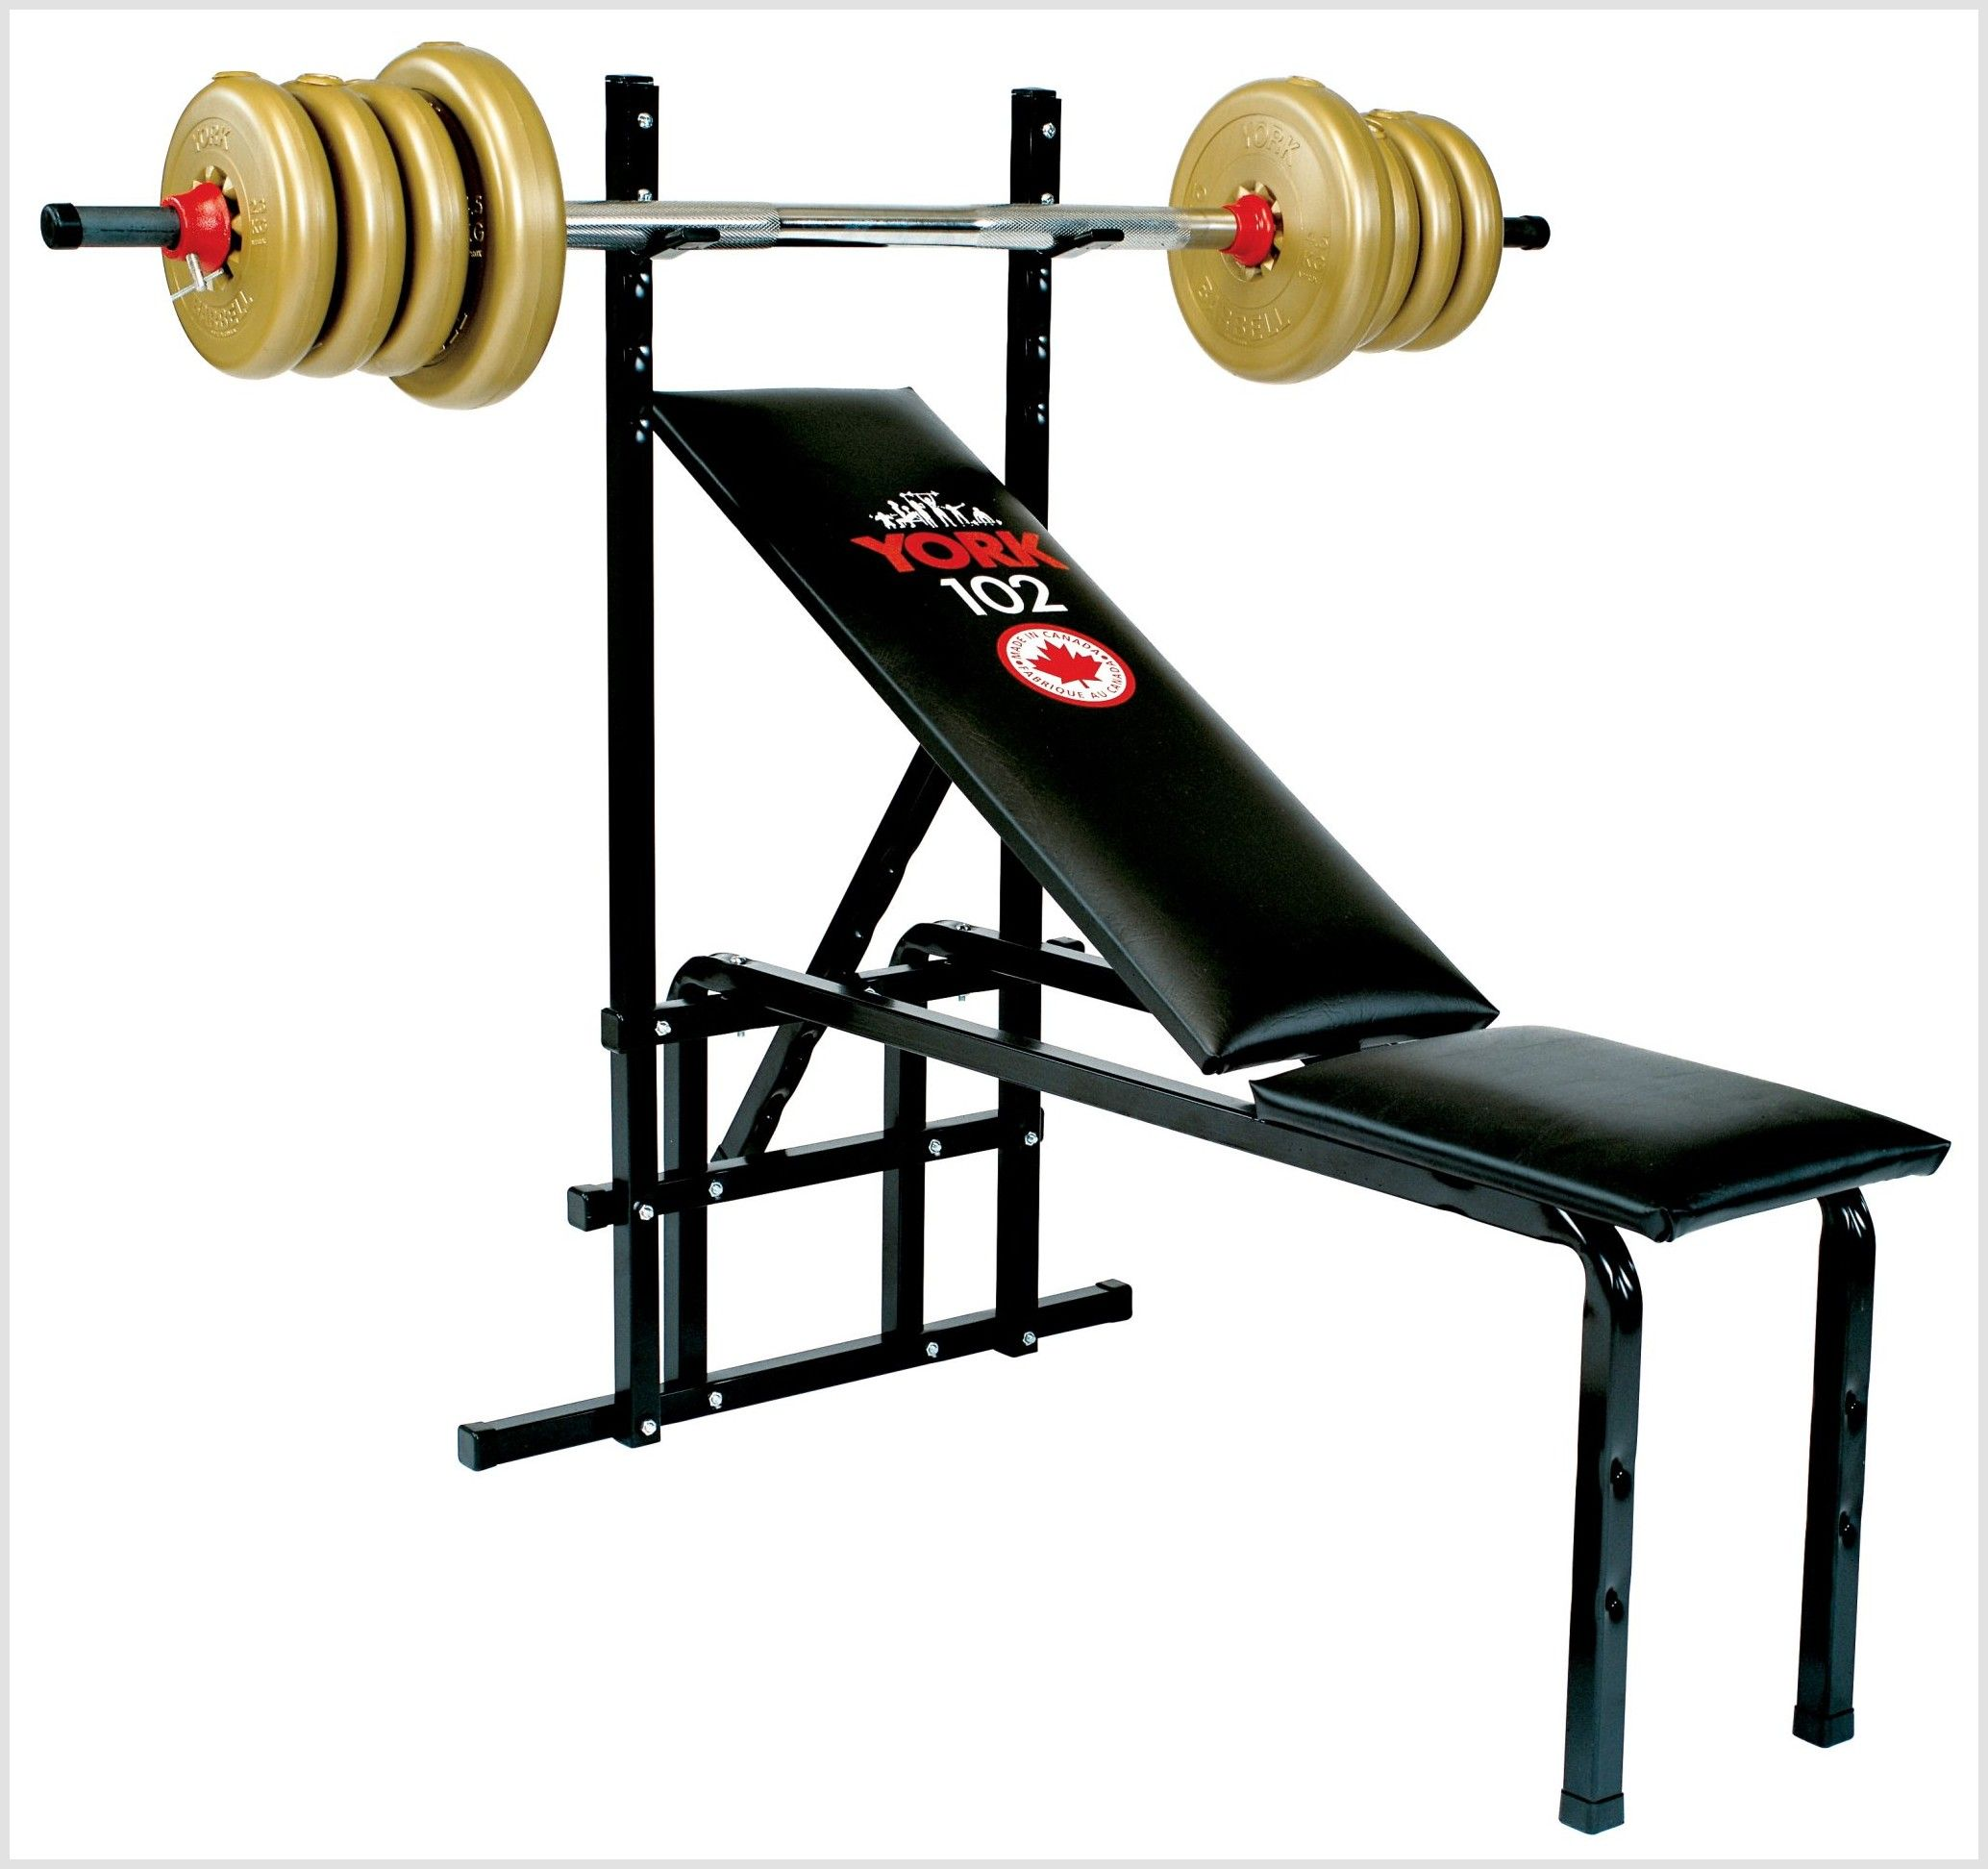 67 Reference Of Barbell Bench Set Price Di 2020